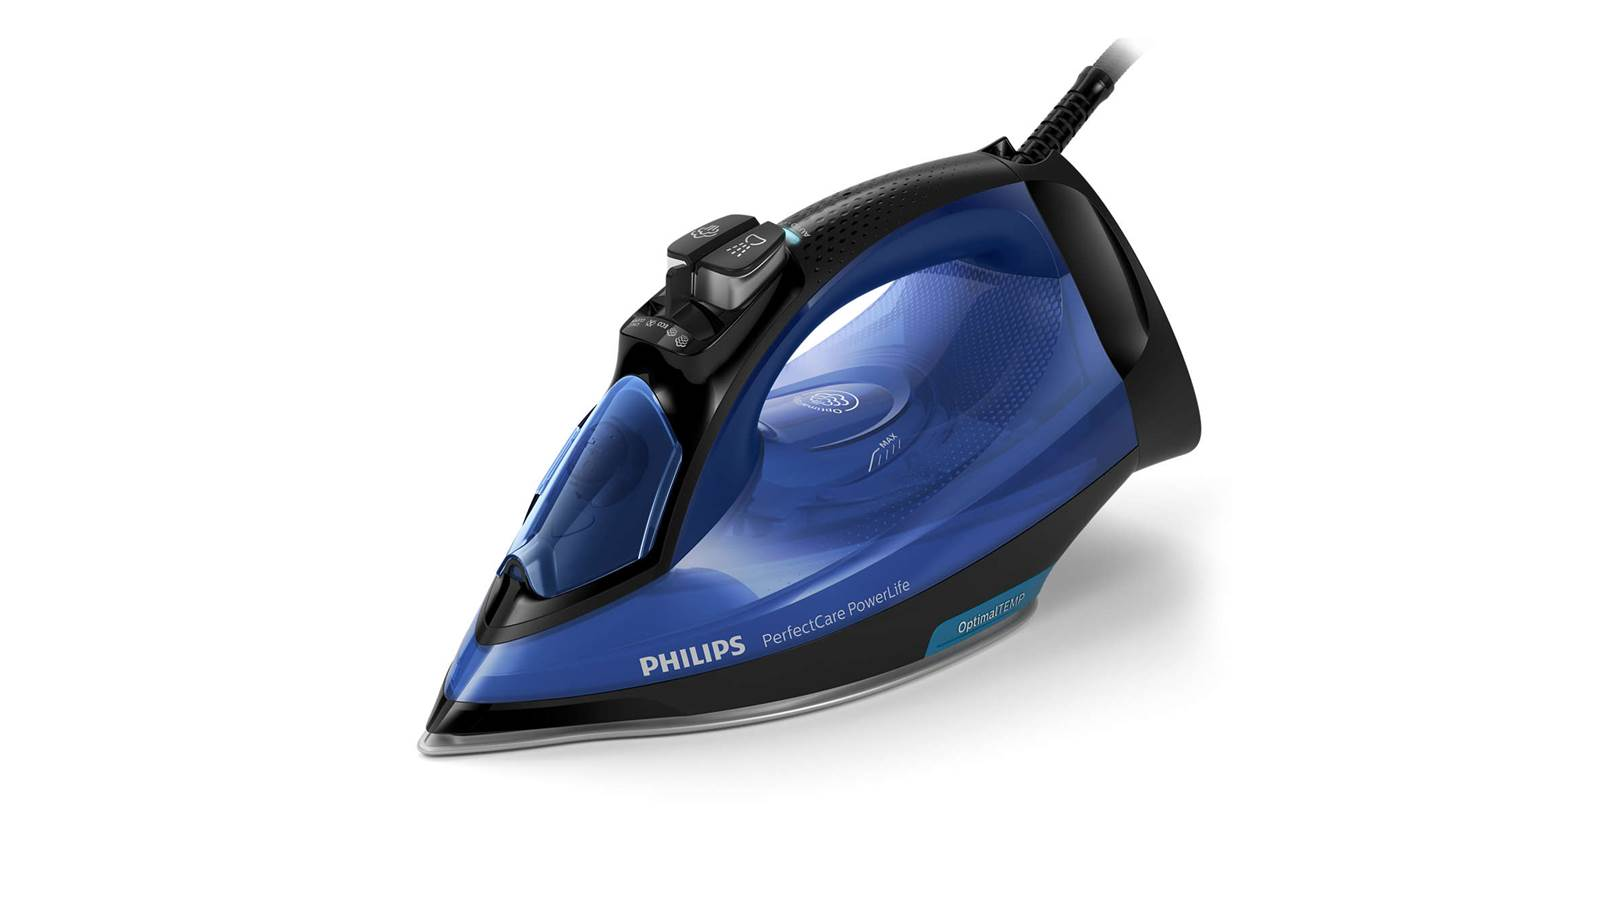 living room mattress coffee table decor ideas philips perfectcare gc3920 steam iron | harvey norman malaysia